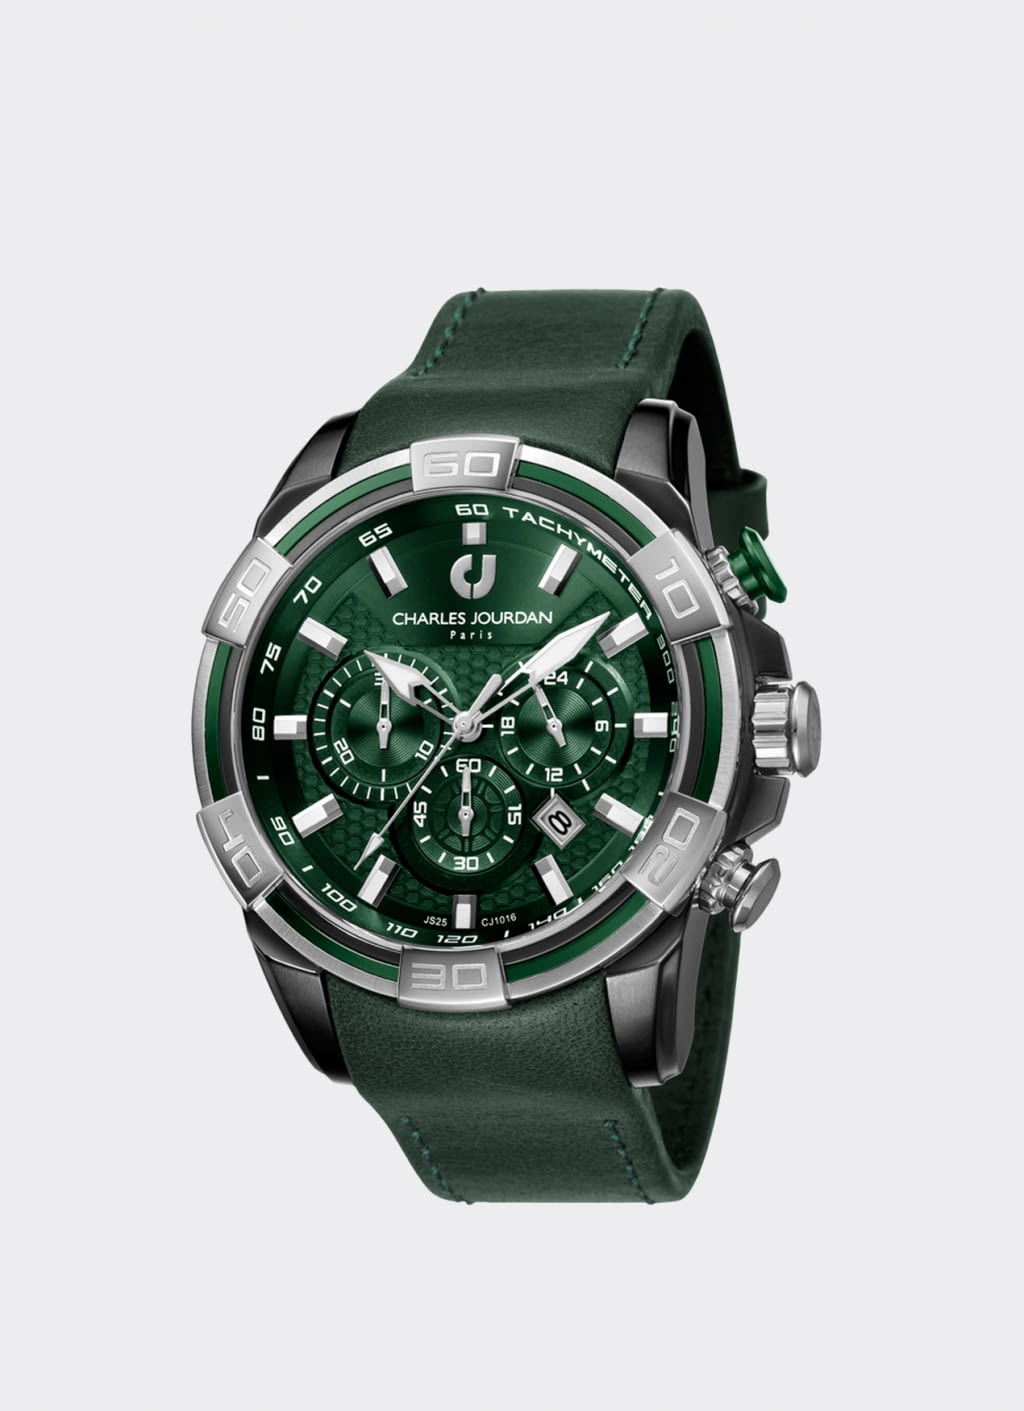 Charles Jourdan Jam Tangan Wanita Stainless Steel2 Daftar Harga Cj1002 2222 Gold Original Green Silver Cj1016 1792 Man Watch